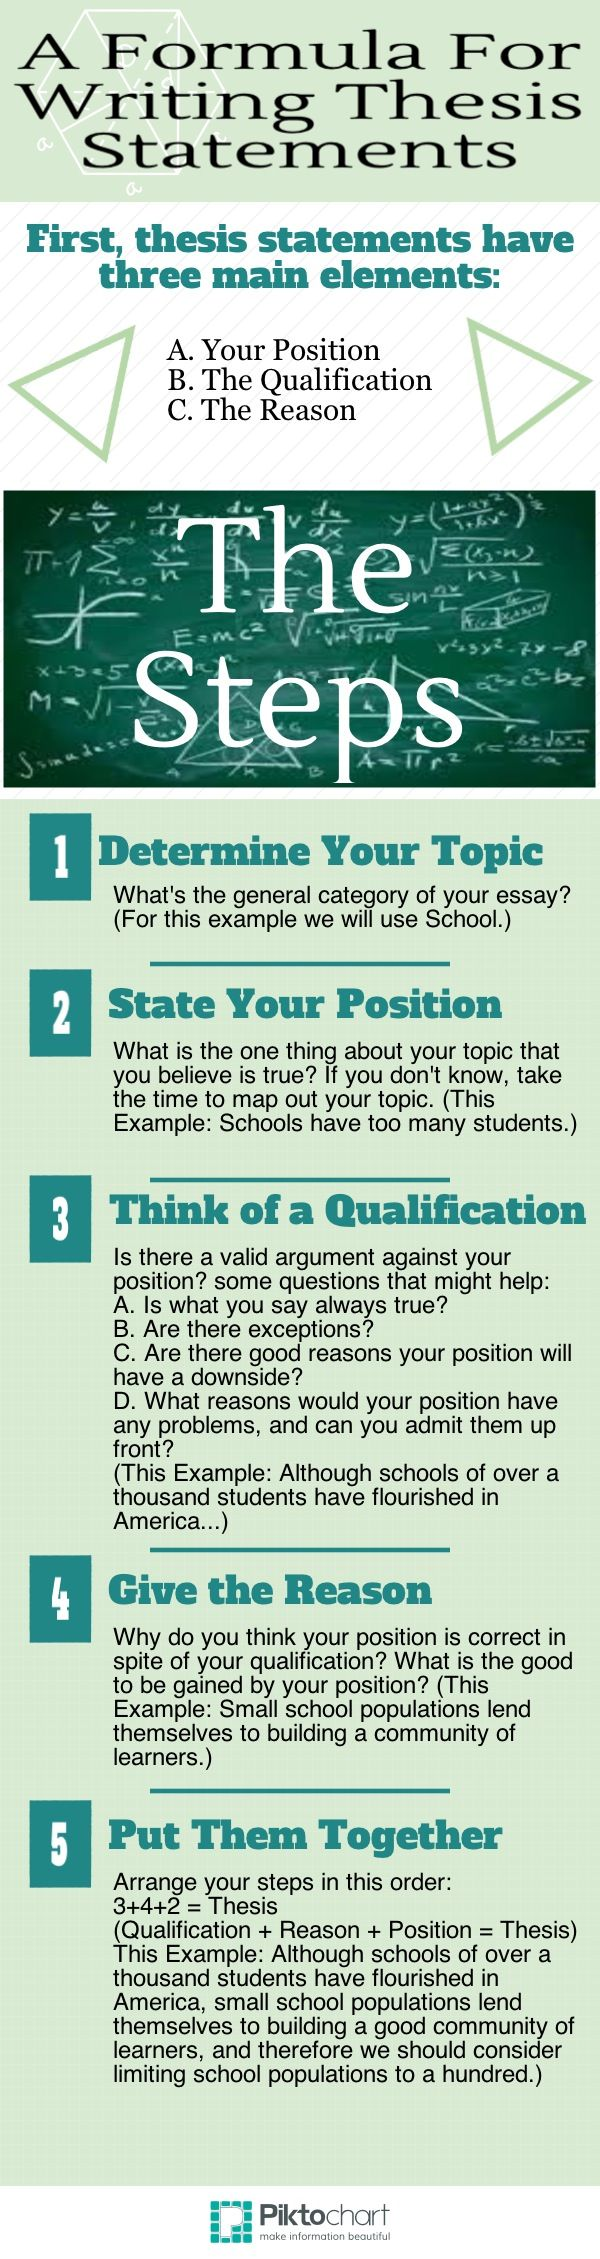 thesis statements  piktochart infographic  education  learning  thesis statements  piktochart infographic